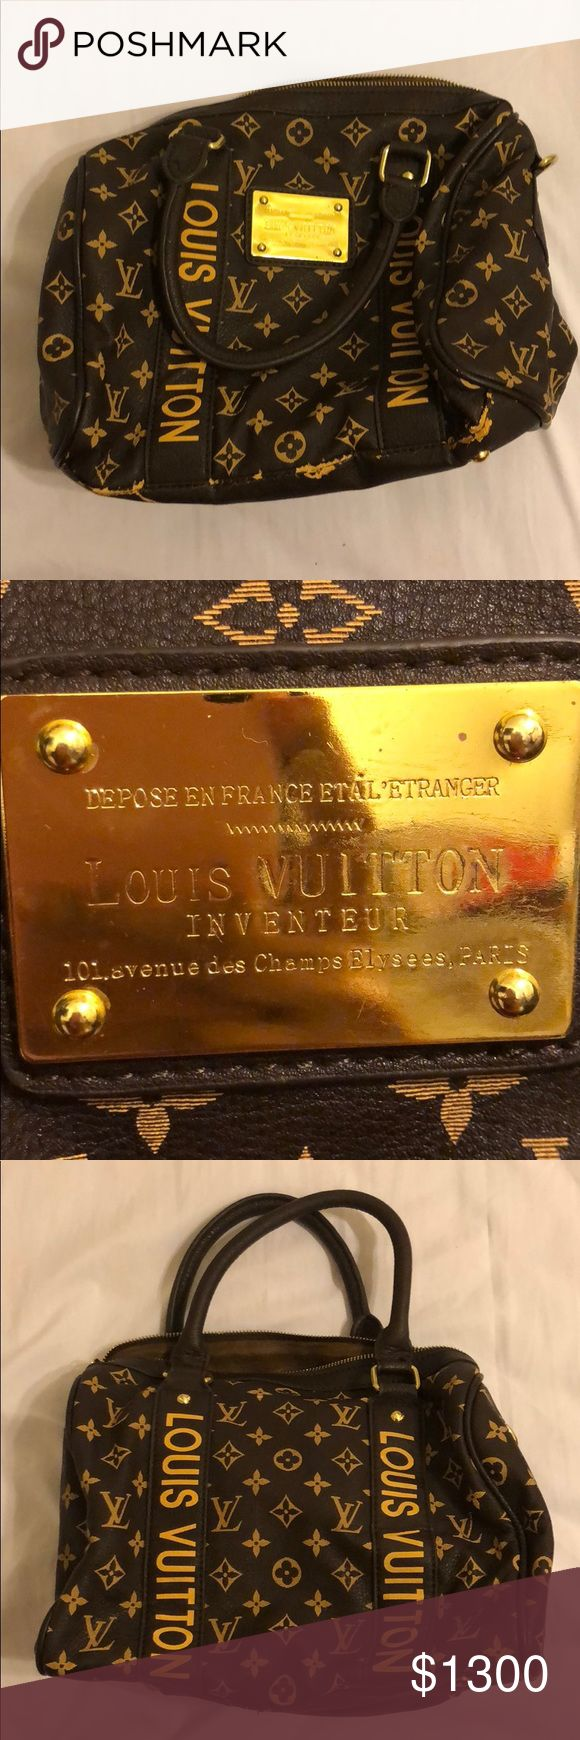 Original Louis Vuitton bag The bag is in well condition except for the bottom part as you can see. Only wore it once. Louis Vuitton Bags Shoulder Bags